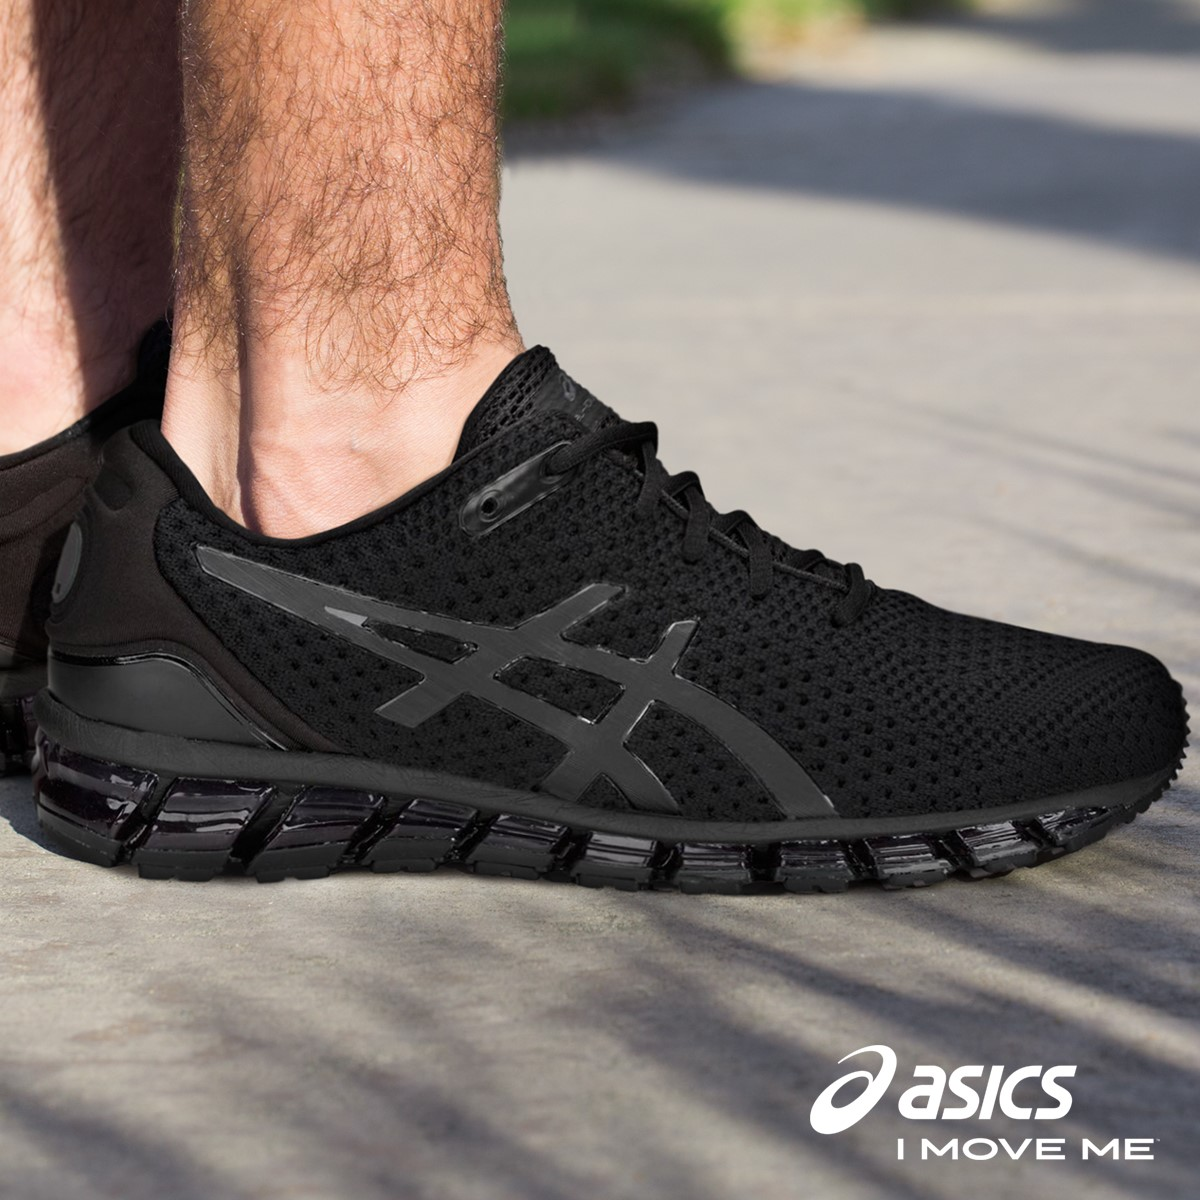 100% quality moderate price new release Asics Gel Quantum 360 Knit 2 - Mens Training Shoes